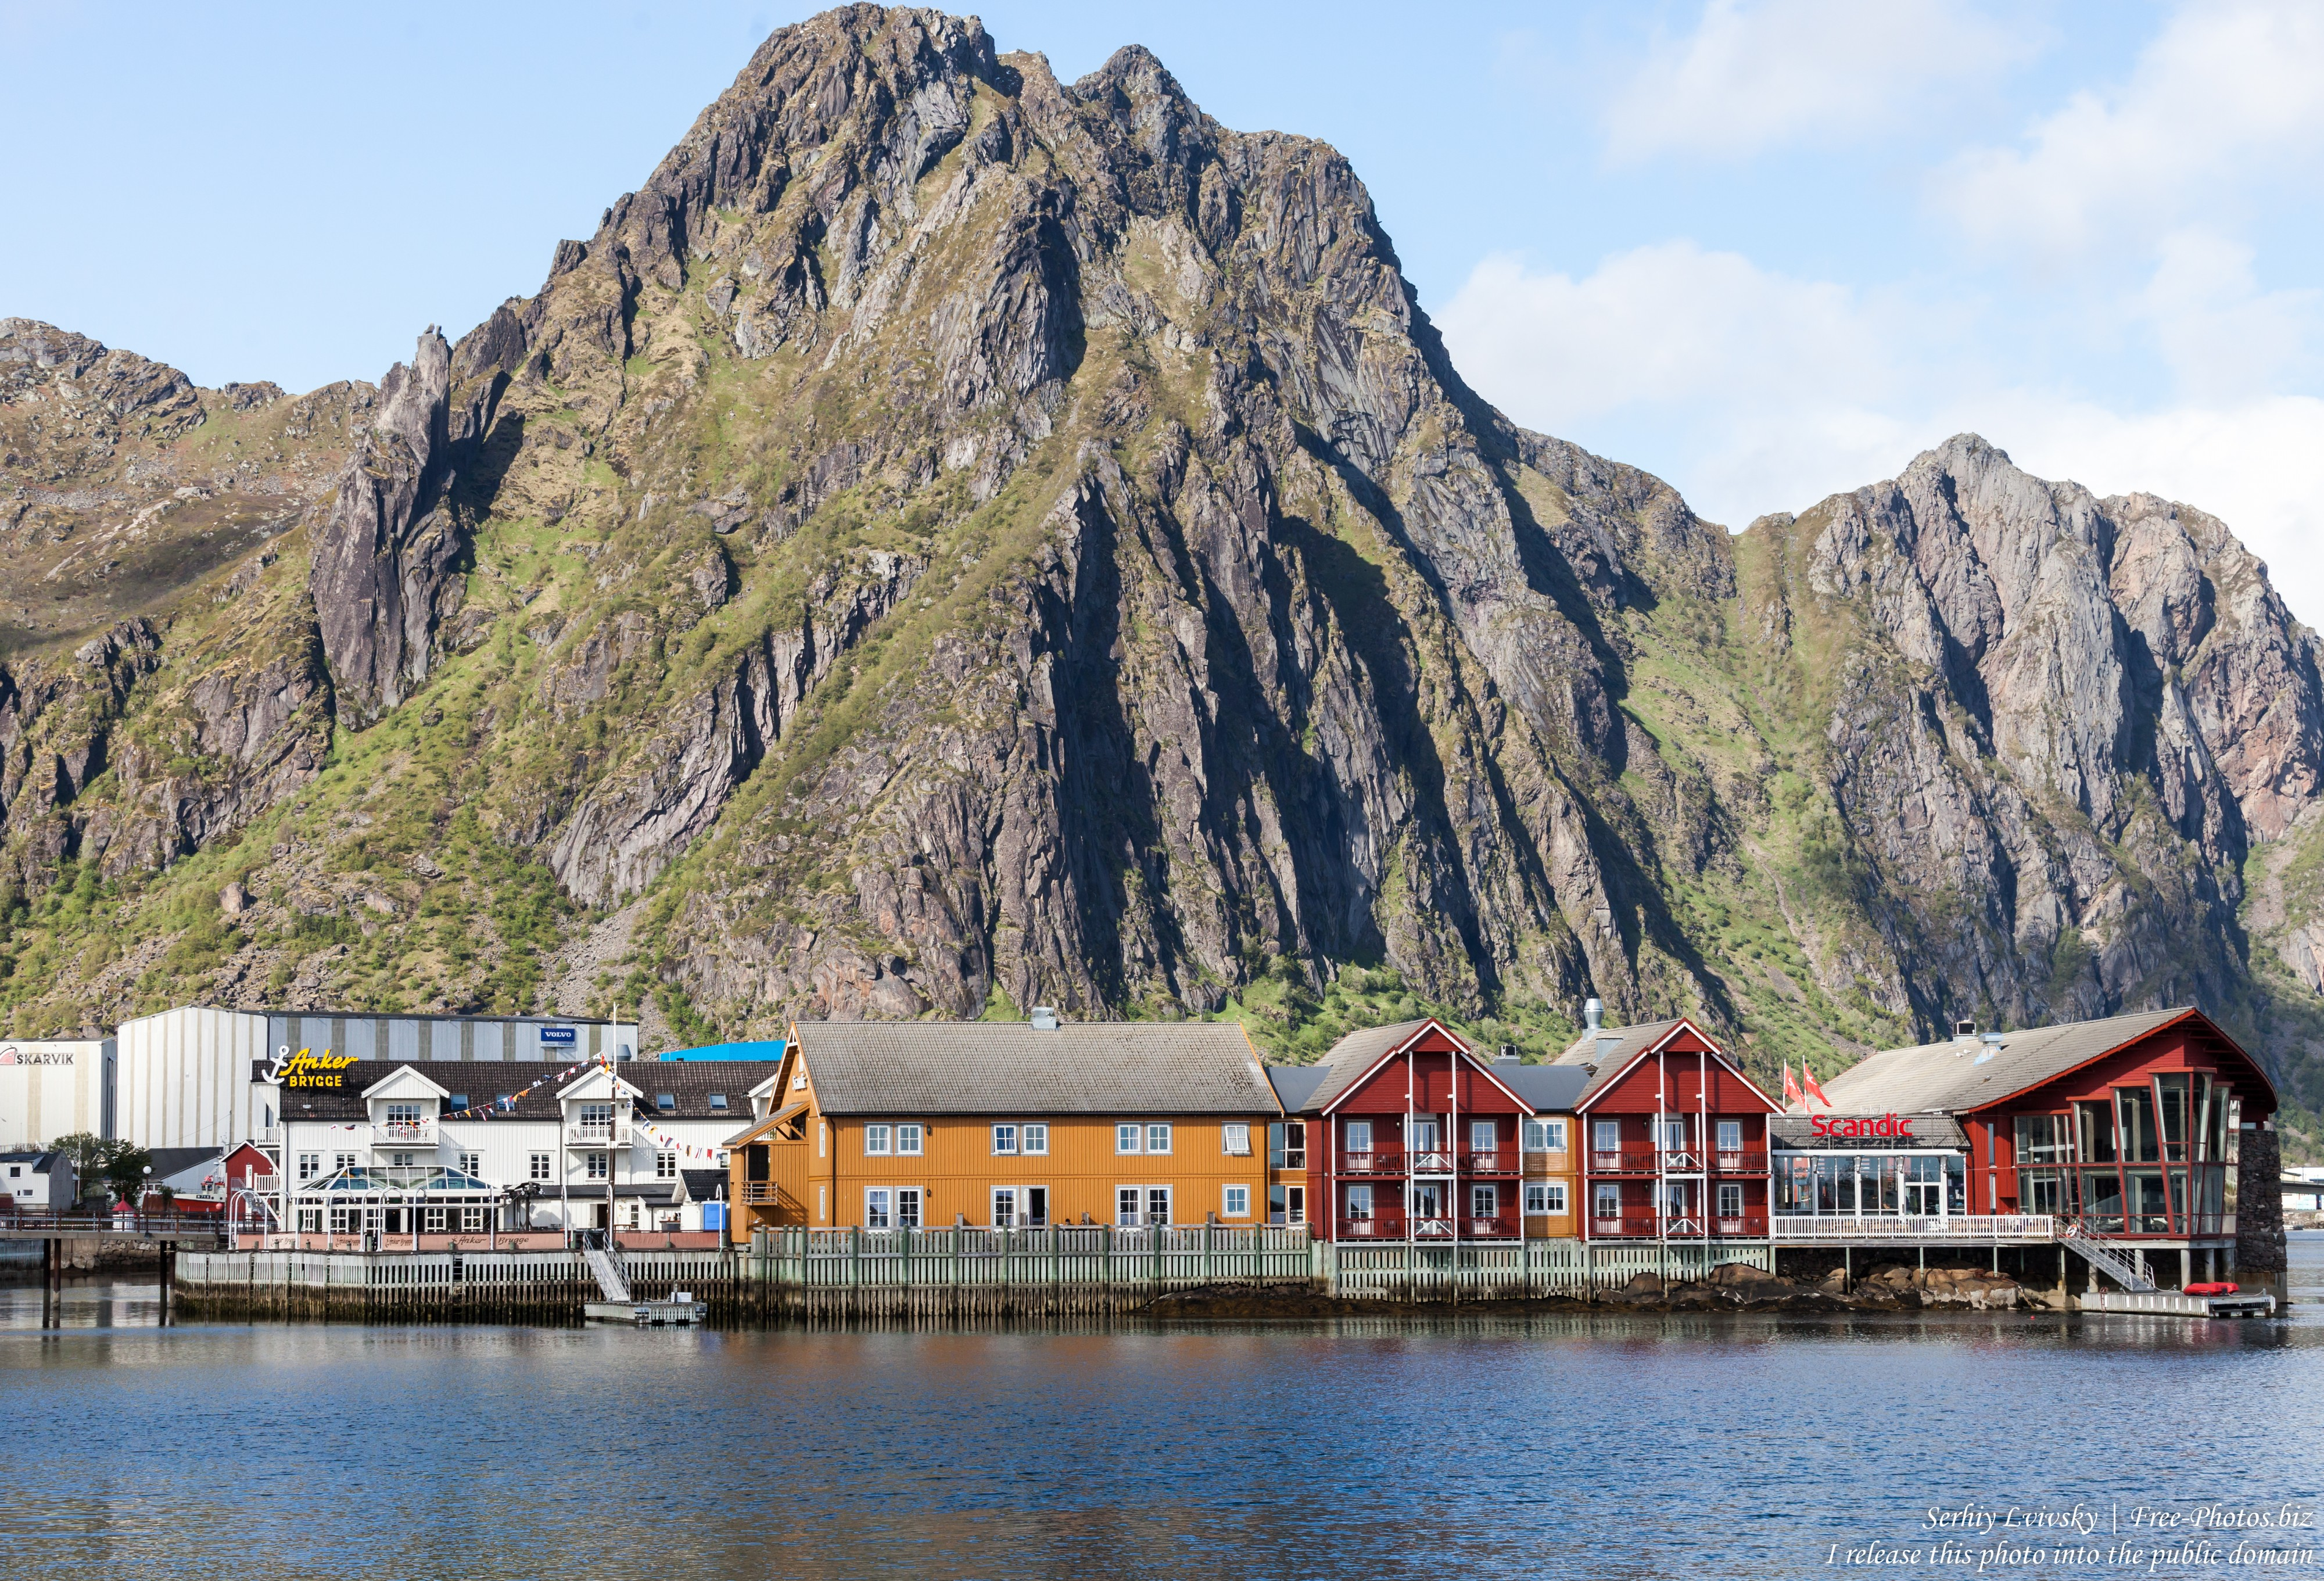 Svolvaer, Lofoten, Norway photographed in June 2018 by Serhiy Lvivsky, picture 8